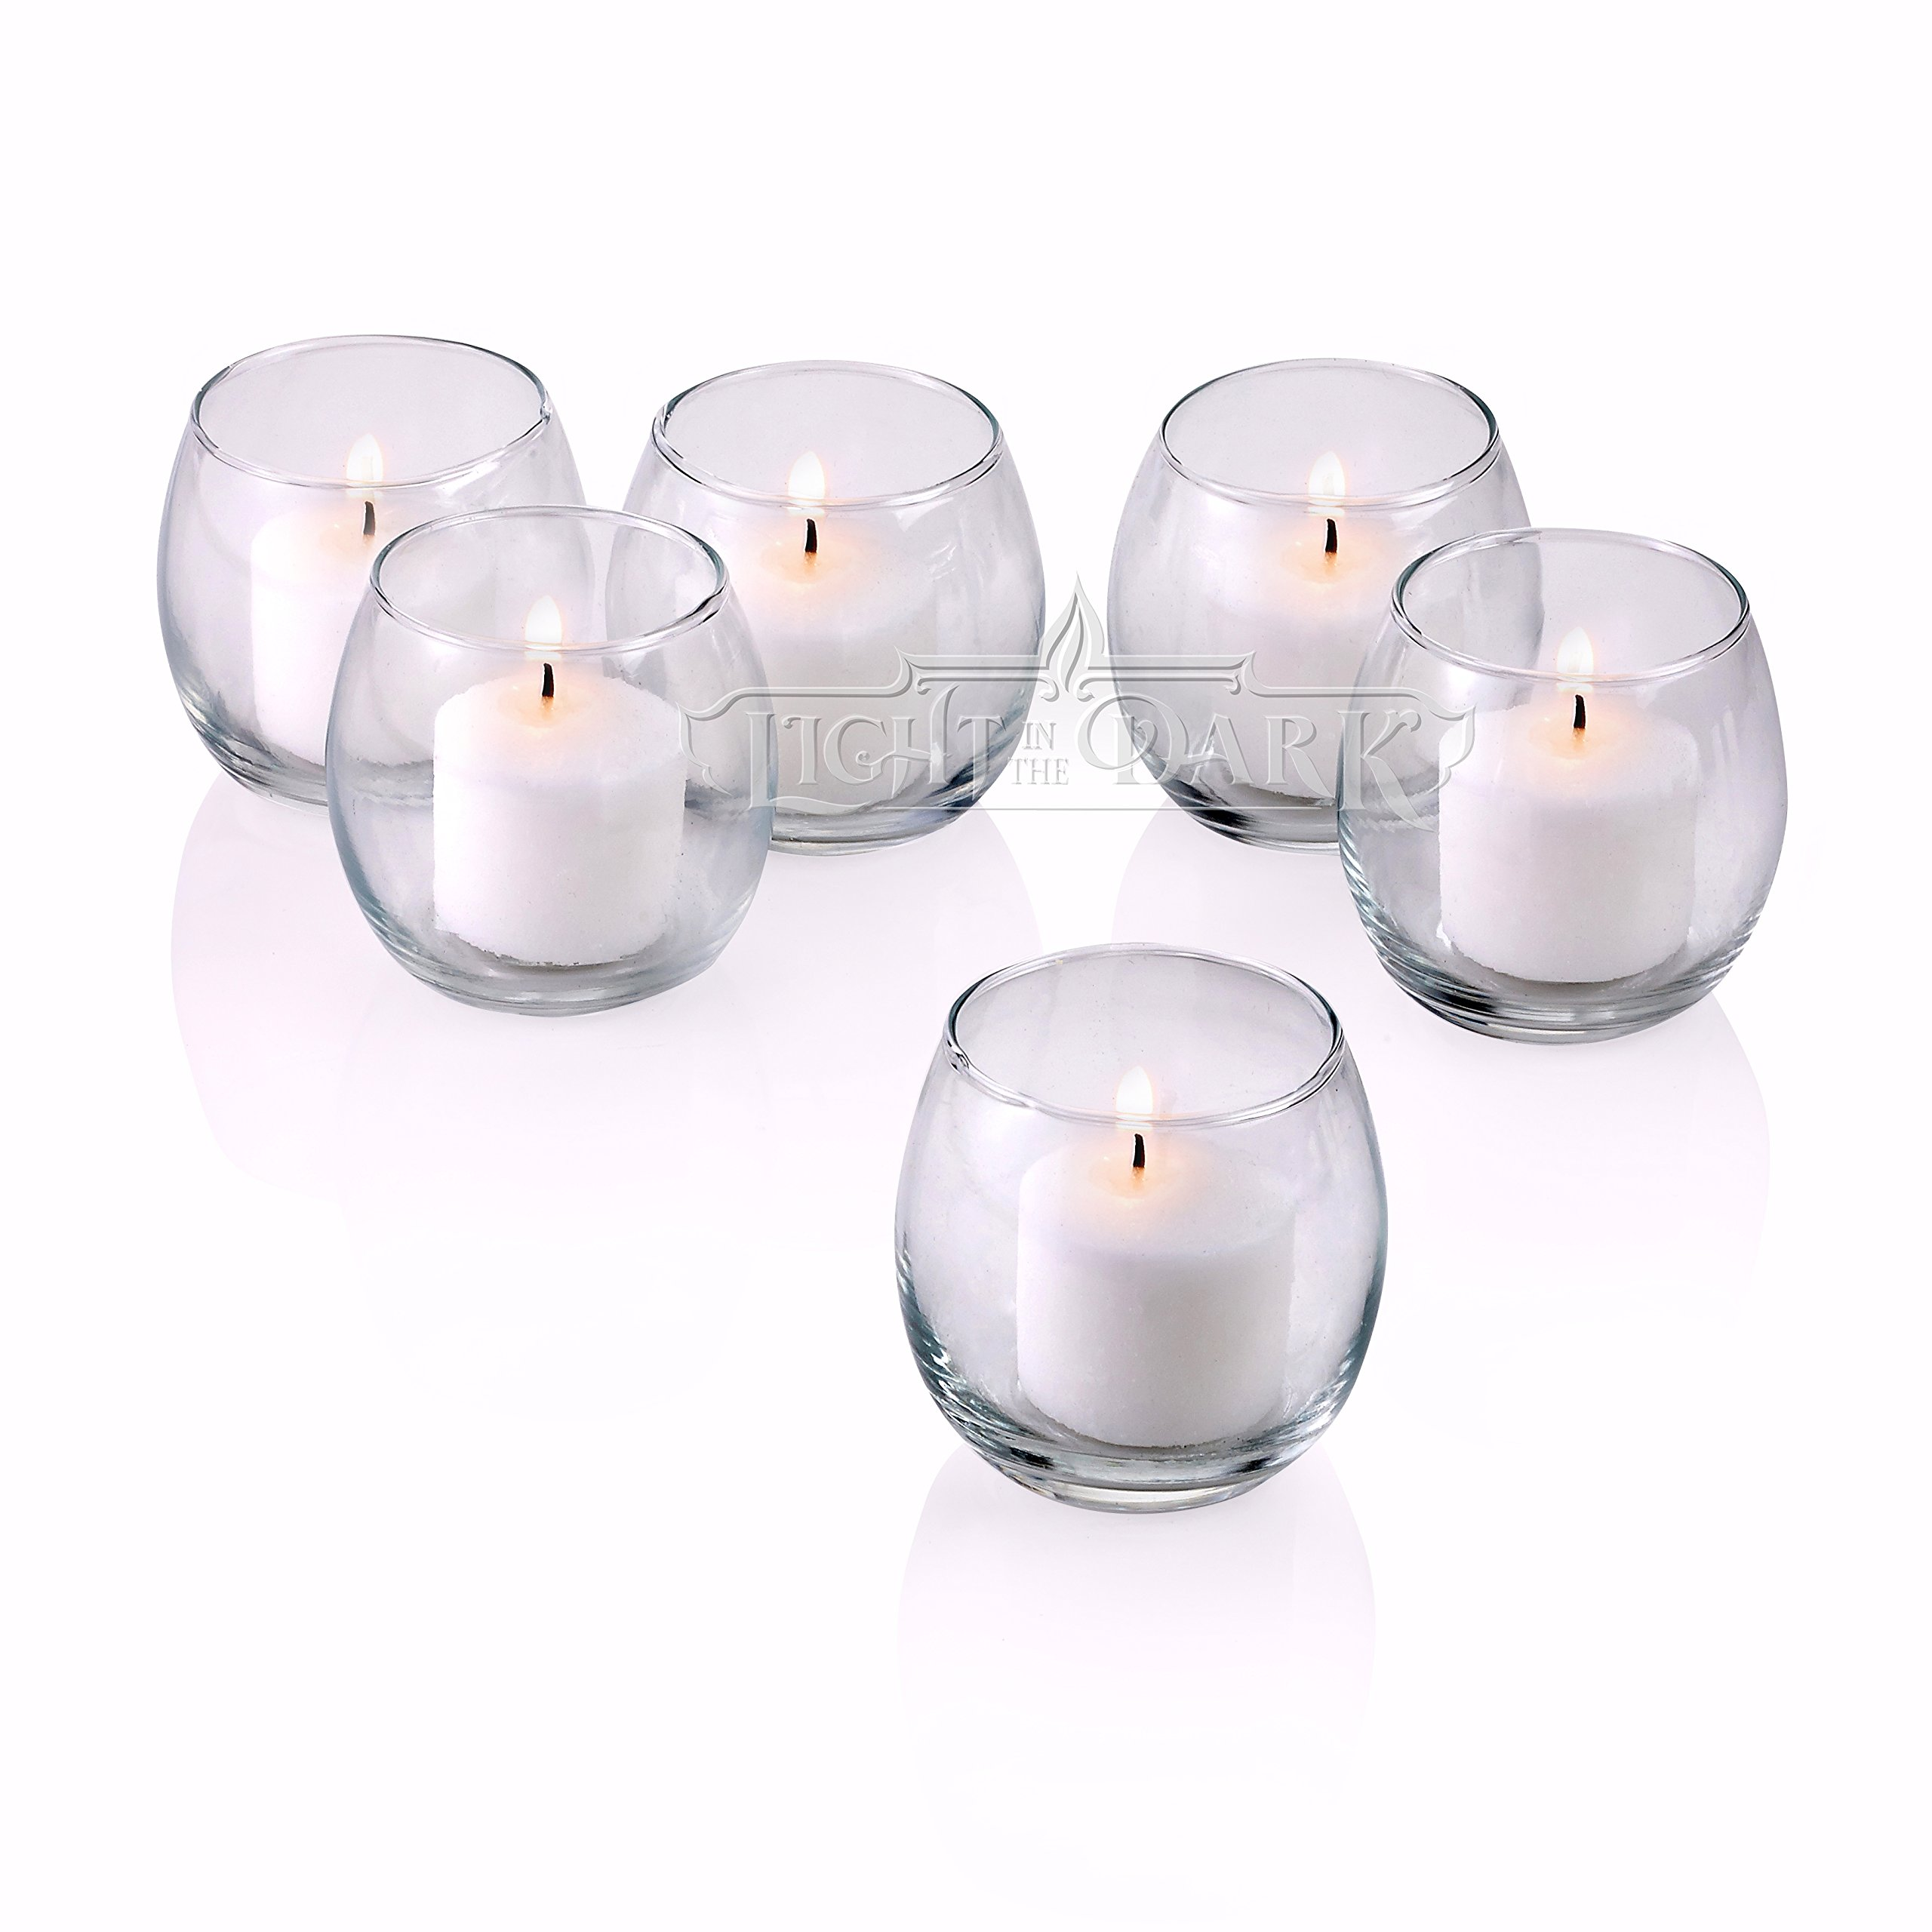 PARNOO Votive Candle Holders Bulk Set of 24 - Glass Votive Tealight Holders - Perfect for Wedding Centerpices, Home Decor (Hurricane Clear) by PARNOO (Image #3)